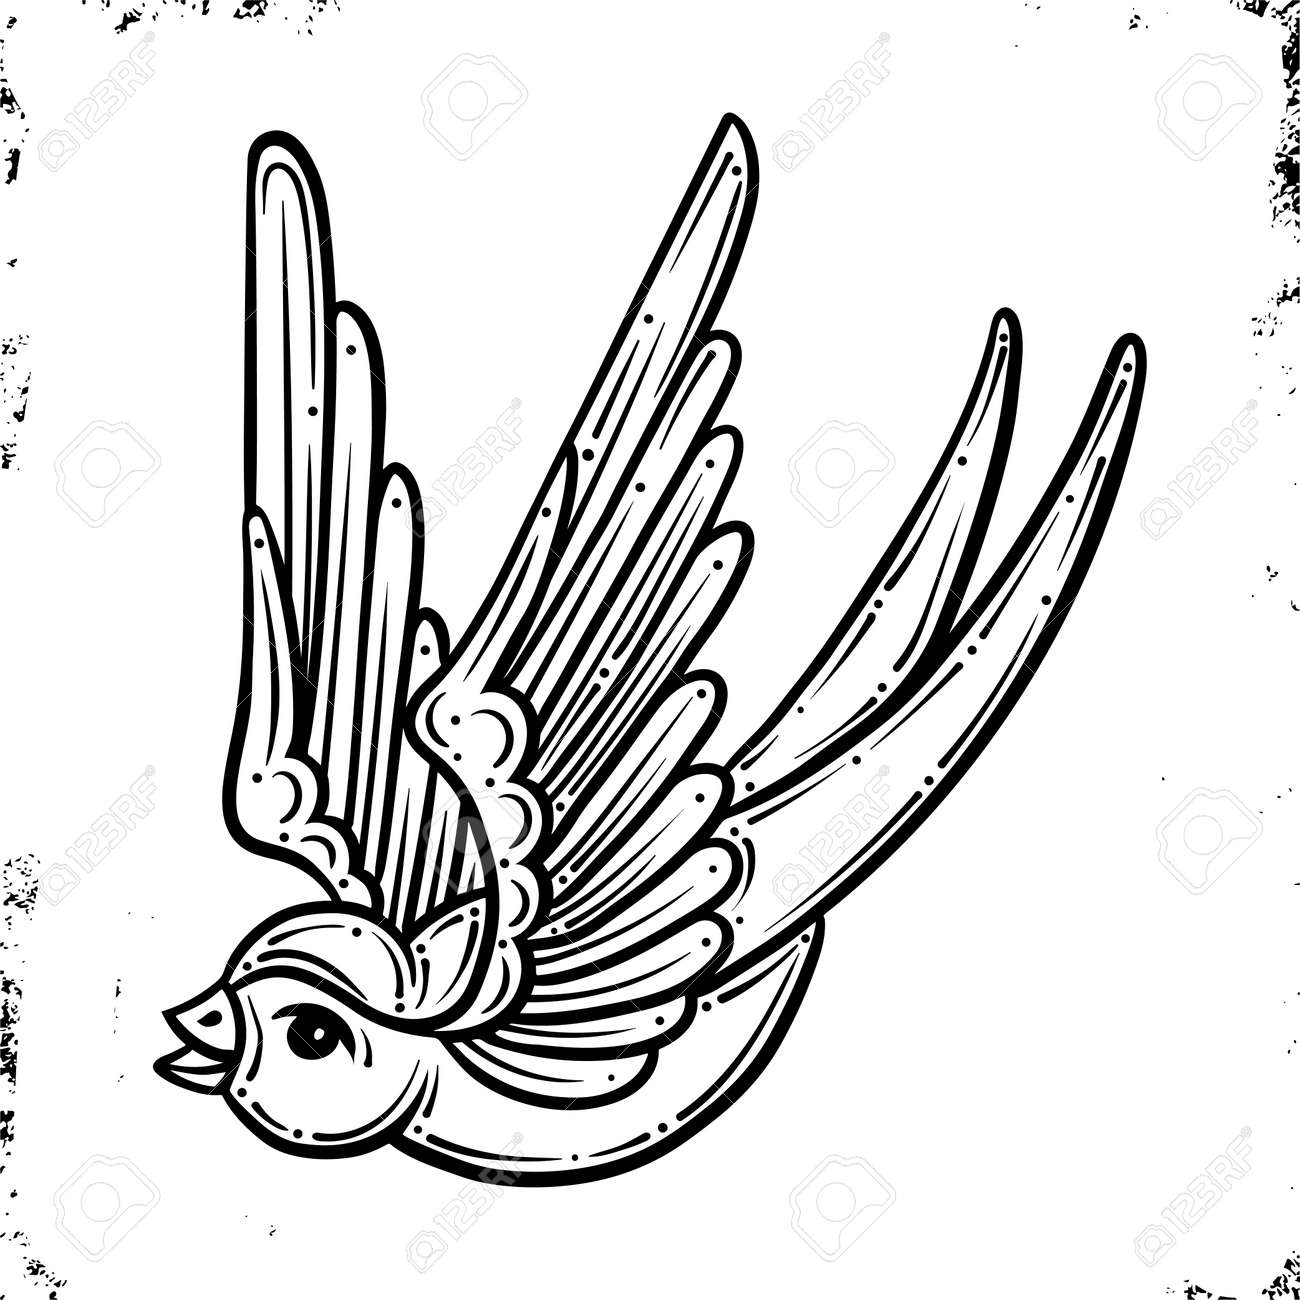 Swallow.Old School Traditional Tattoo. On Vintage background. Vector isolation.Good for printing youth fashion t-shirts and stickers. Salon Tattoo Emblem, Temporary tattoo decal - 132075332